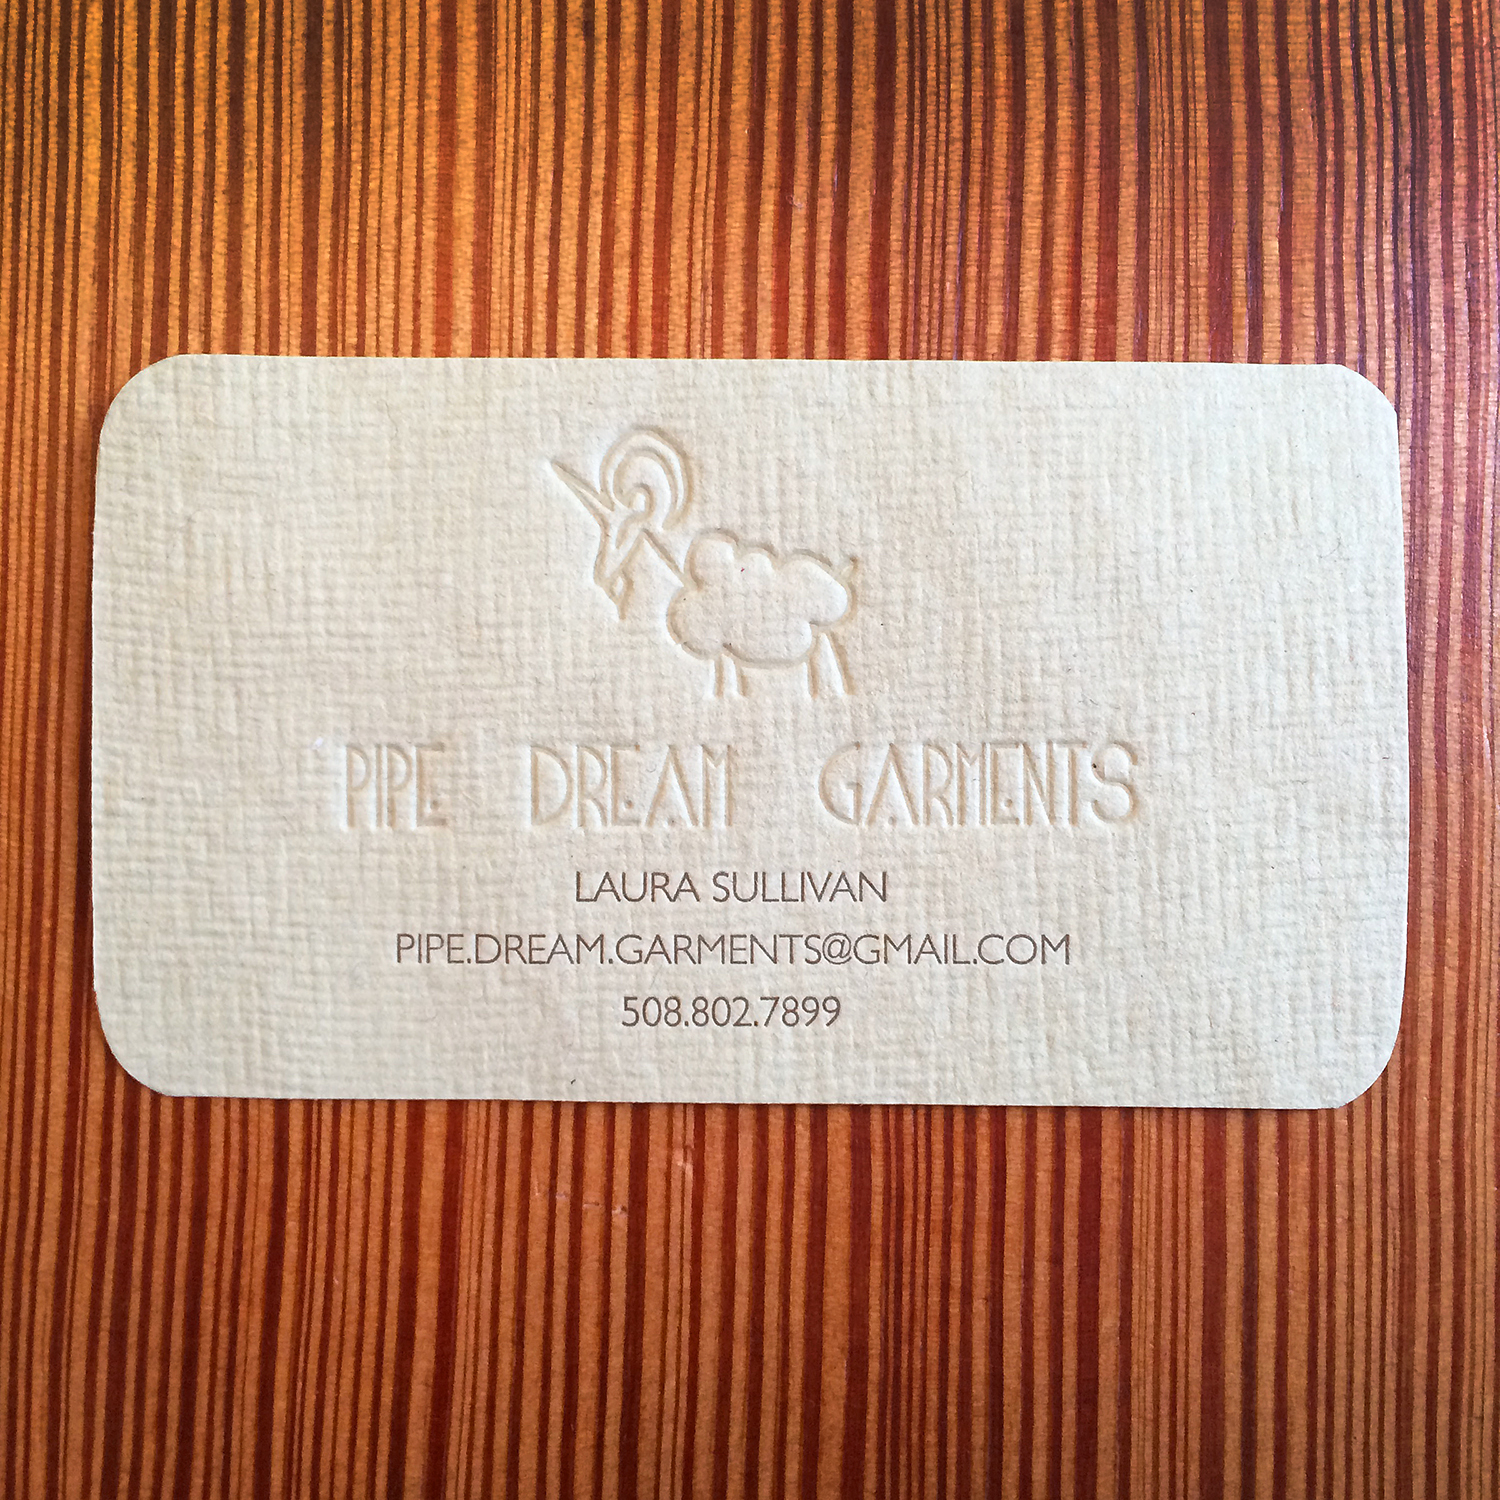 Pipe Dream Garments - Letterpress Business Card.jpg